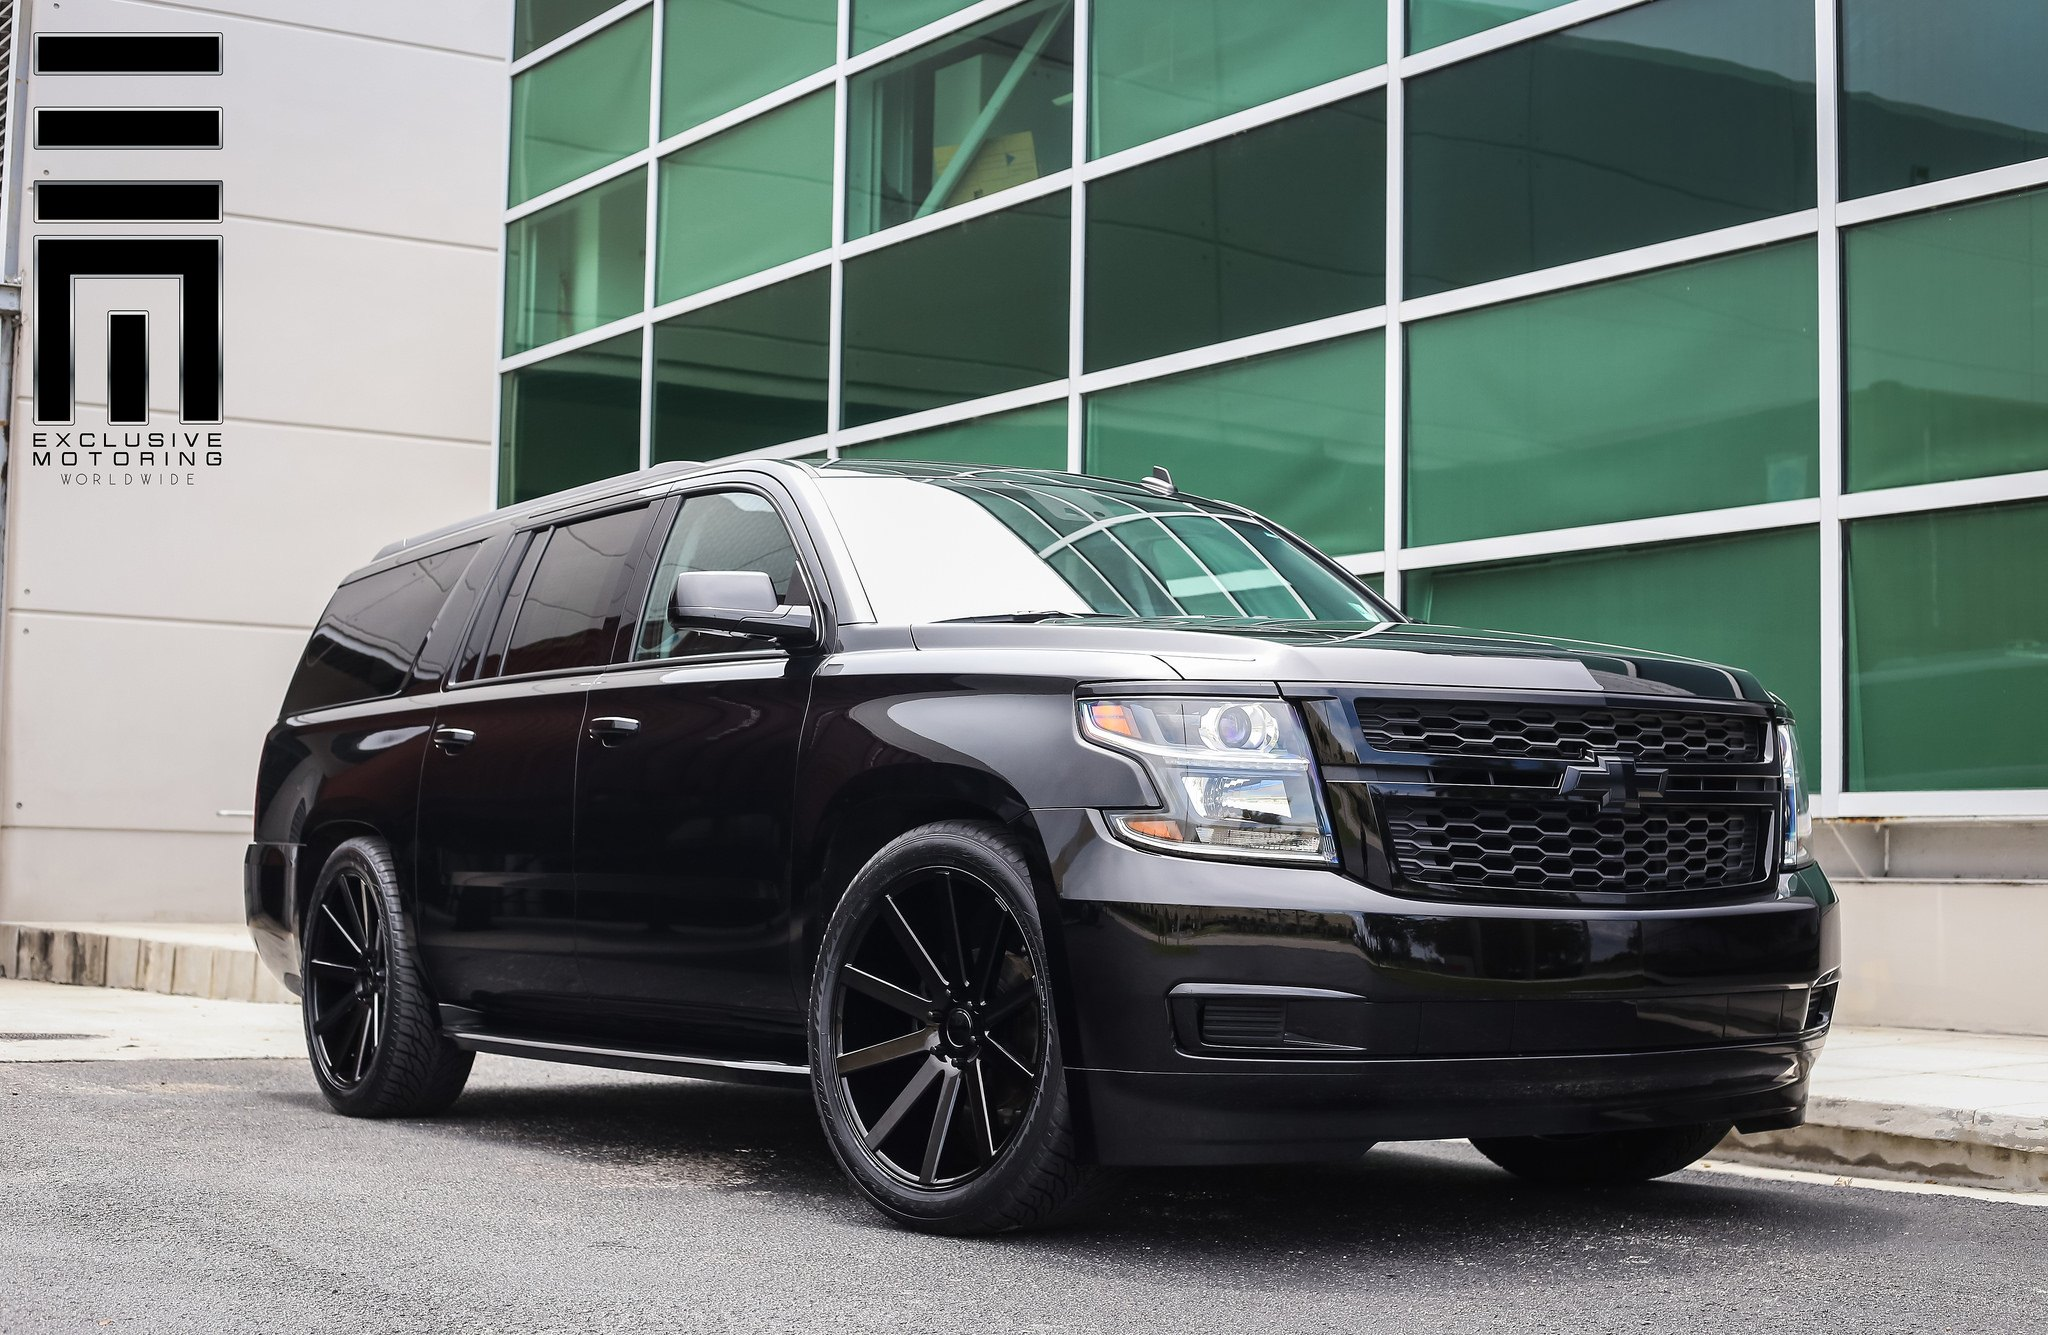 custom 2016 chevy tahoe images mods photos upgrades gallery. Black Bedroom Furniture Sets. Home Design Ideas